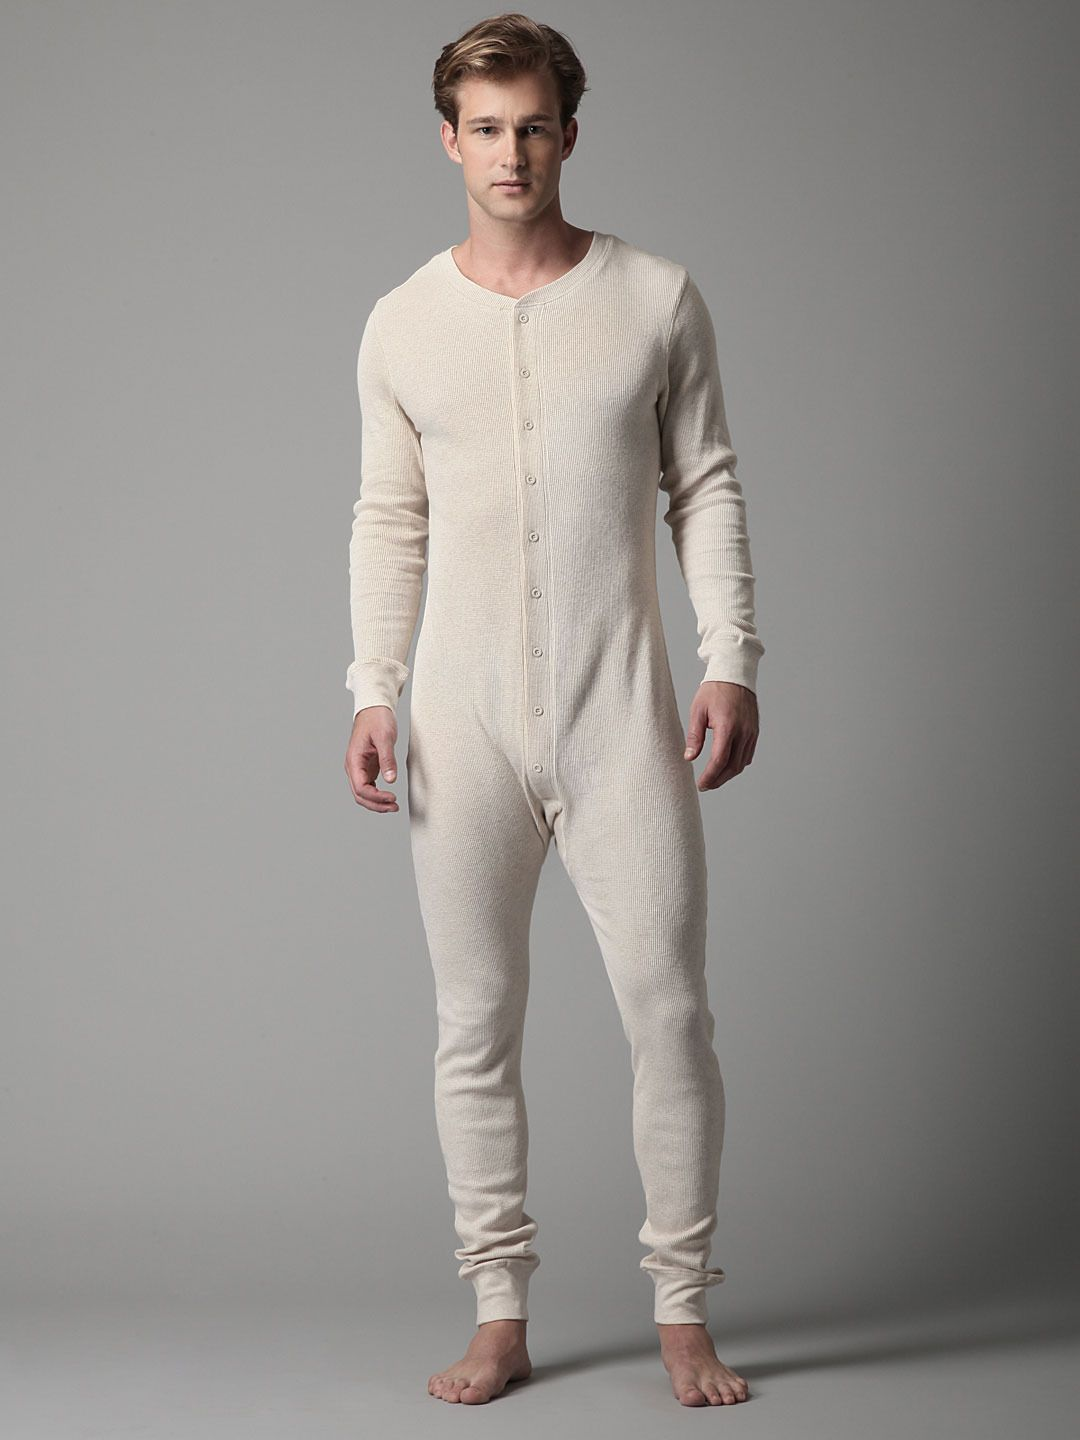 You searched for: white long johns! Etsy is the home to thousands of handmade, vintage, and one-of-a-kind products and gifts related to your search. No matter what you're looking for or where you are in the world, our global marketplace of sellers can help you find unique and affordable options. Let's get started!